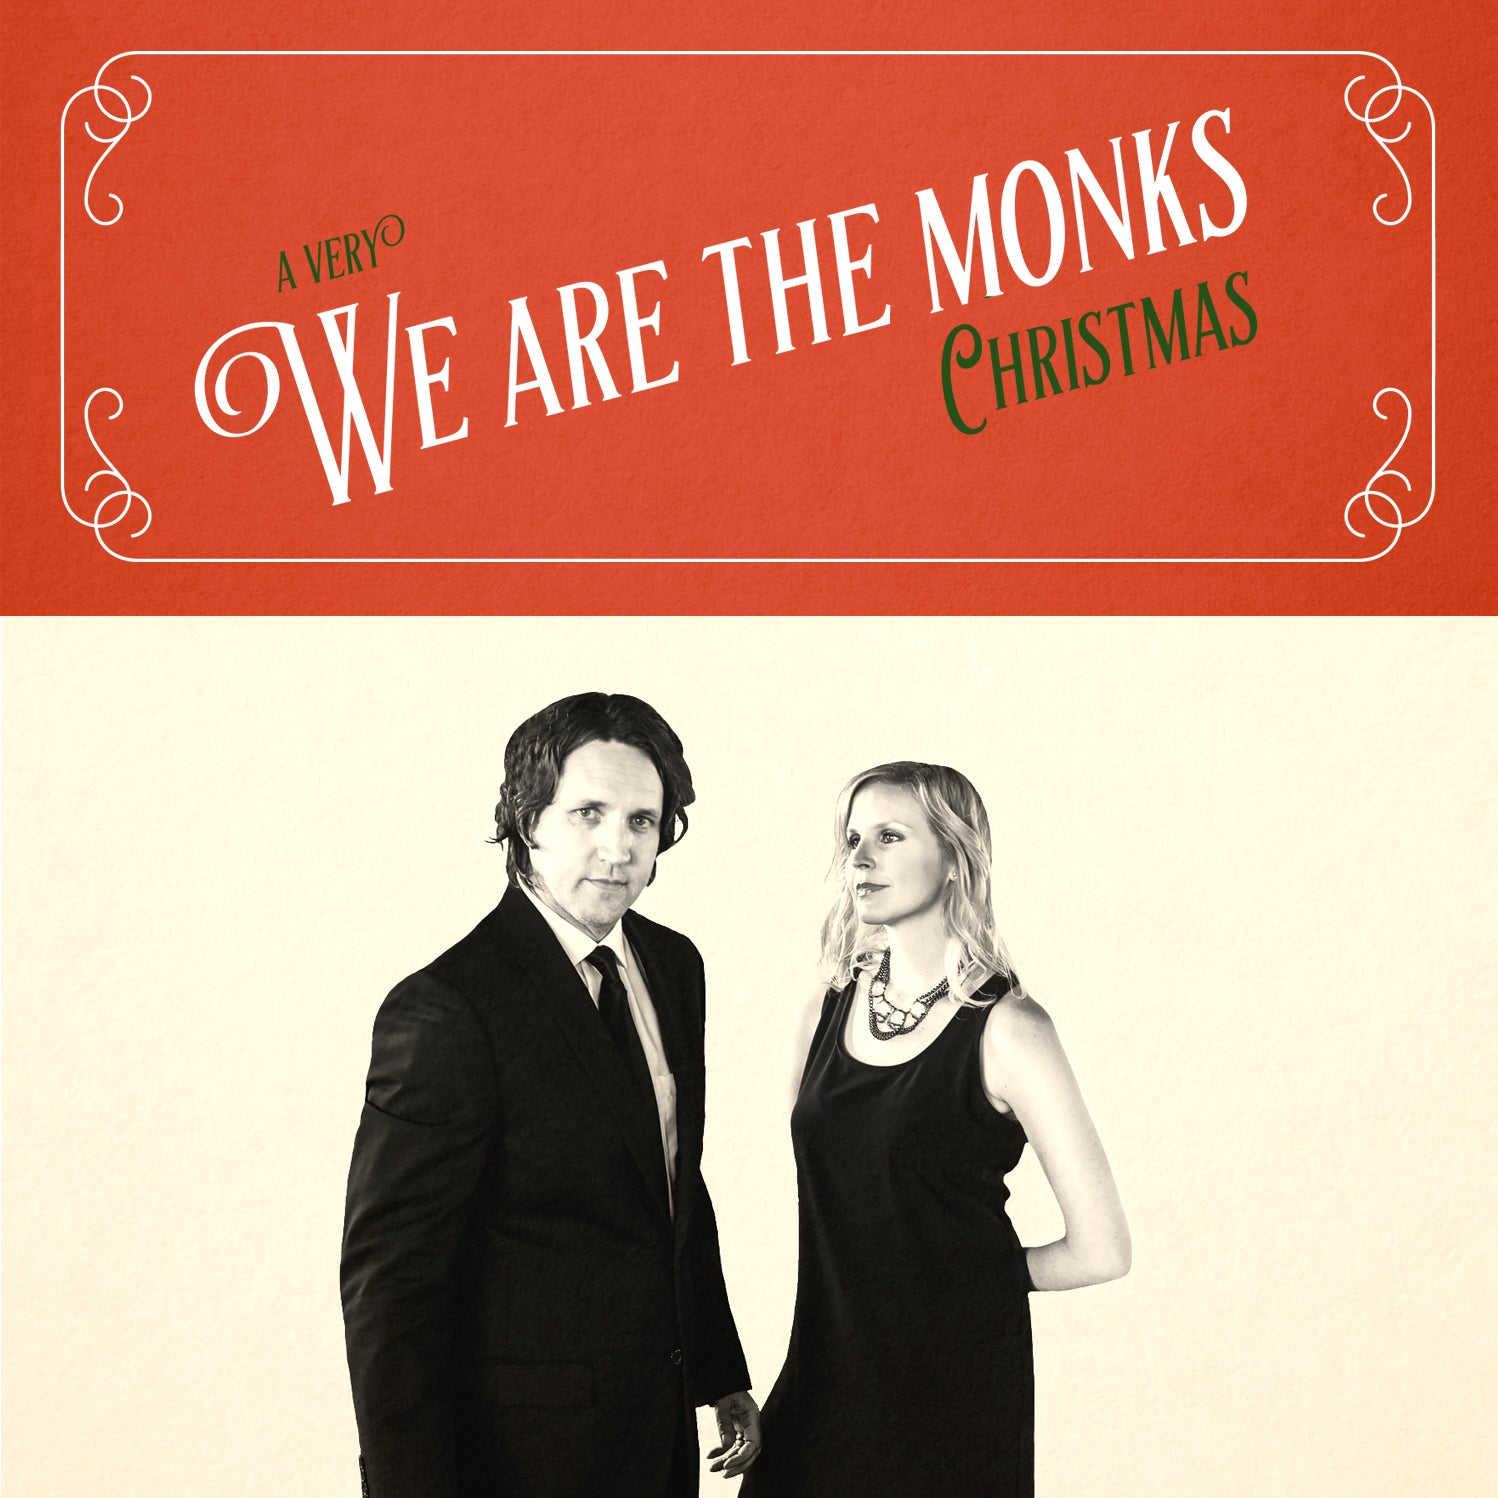 A Very We Are The Monks Christmas